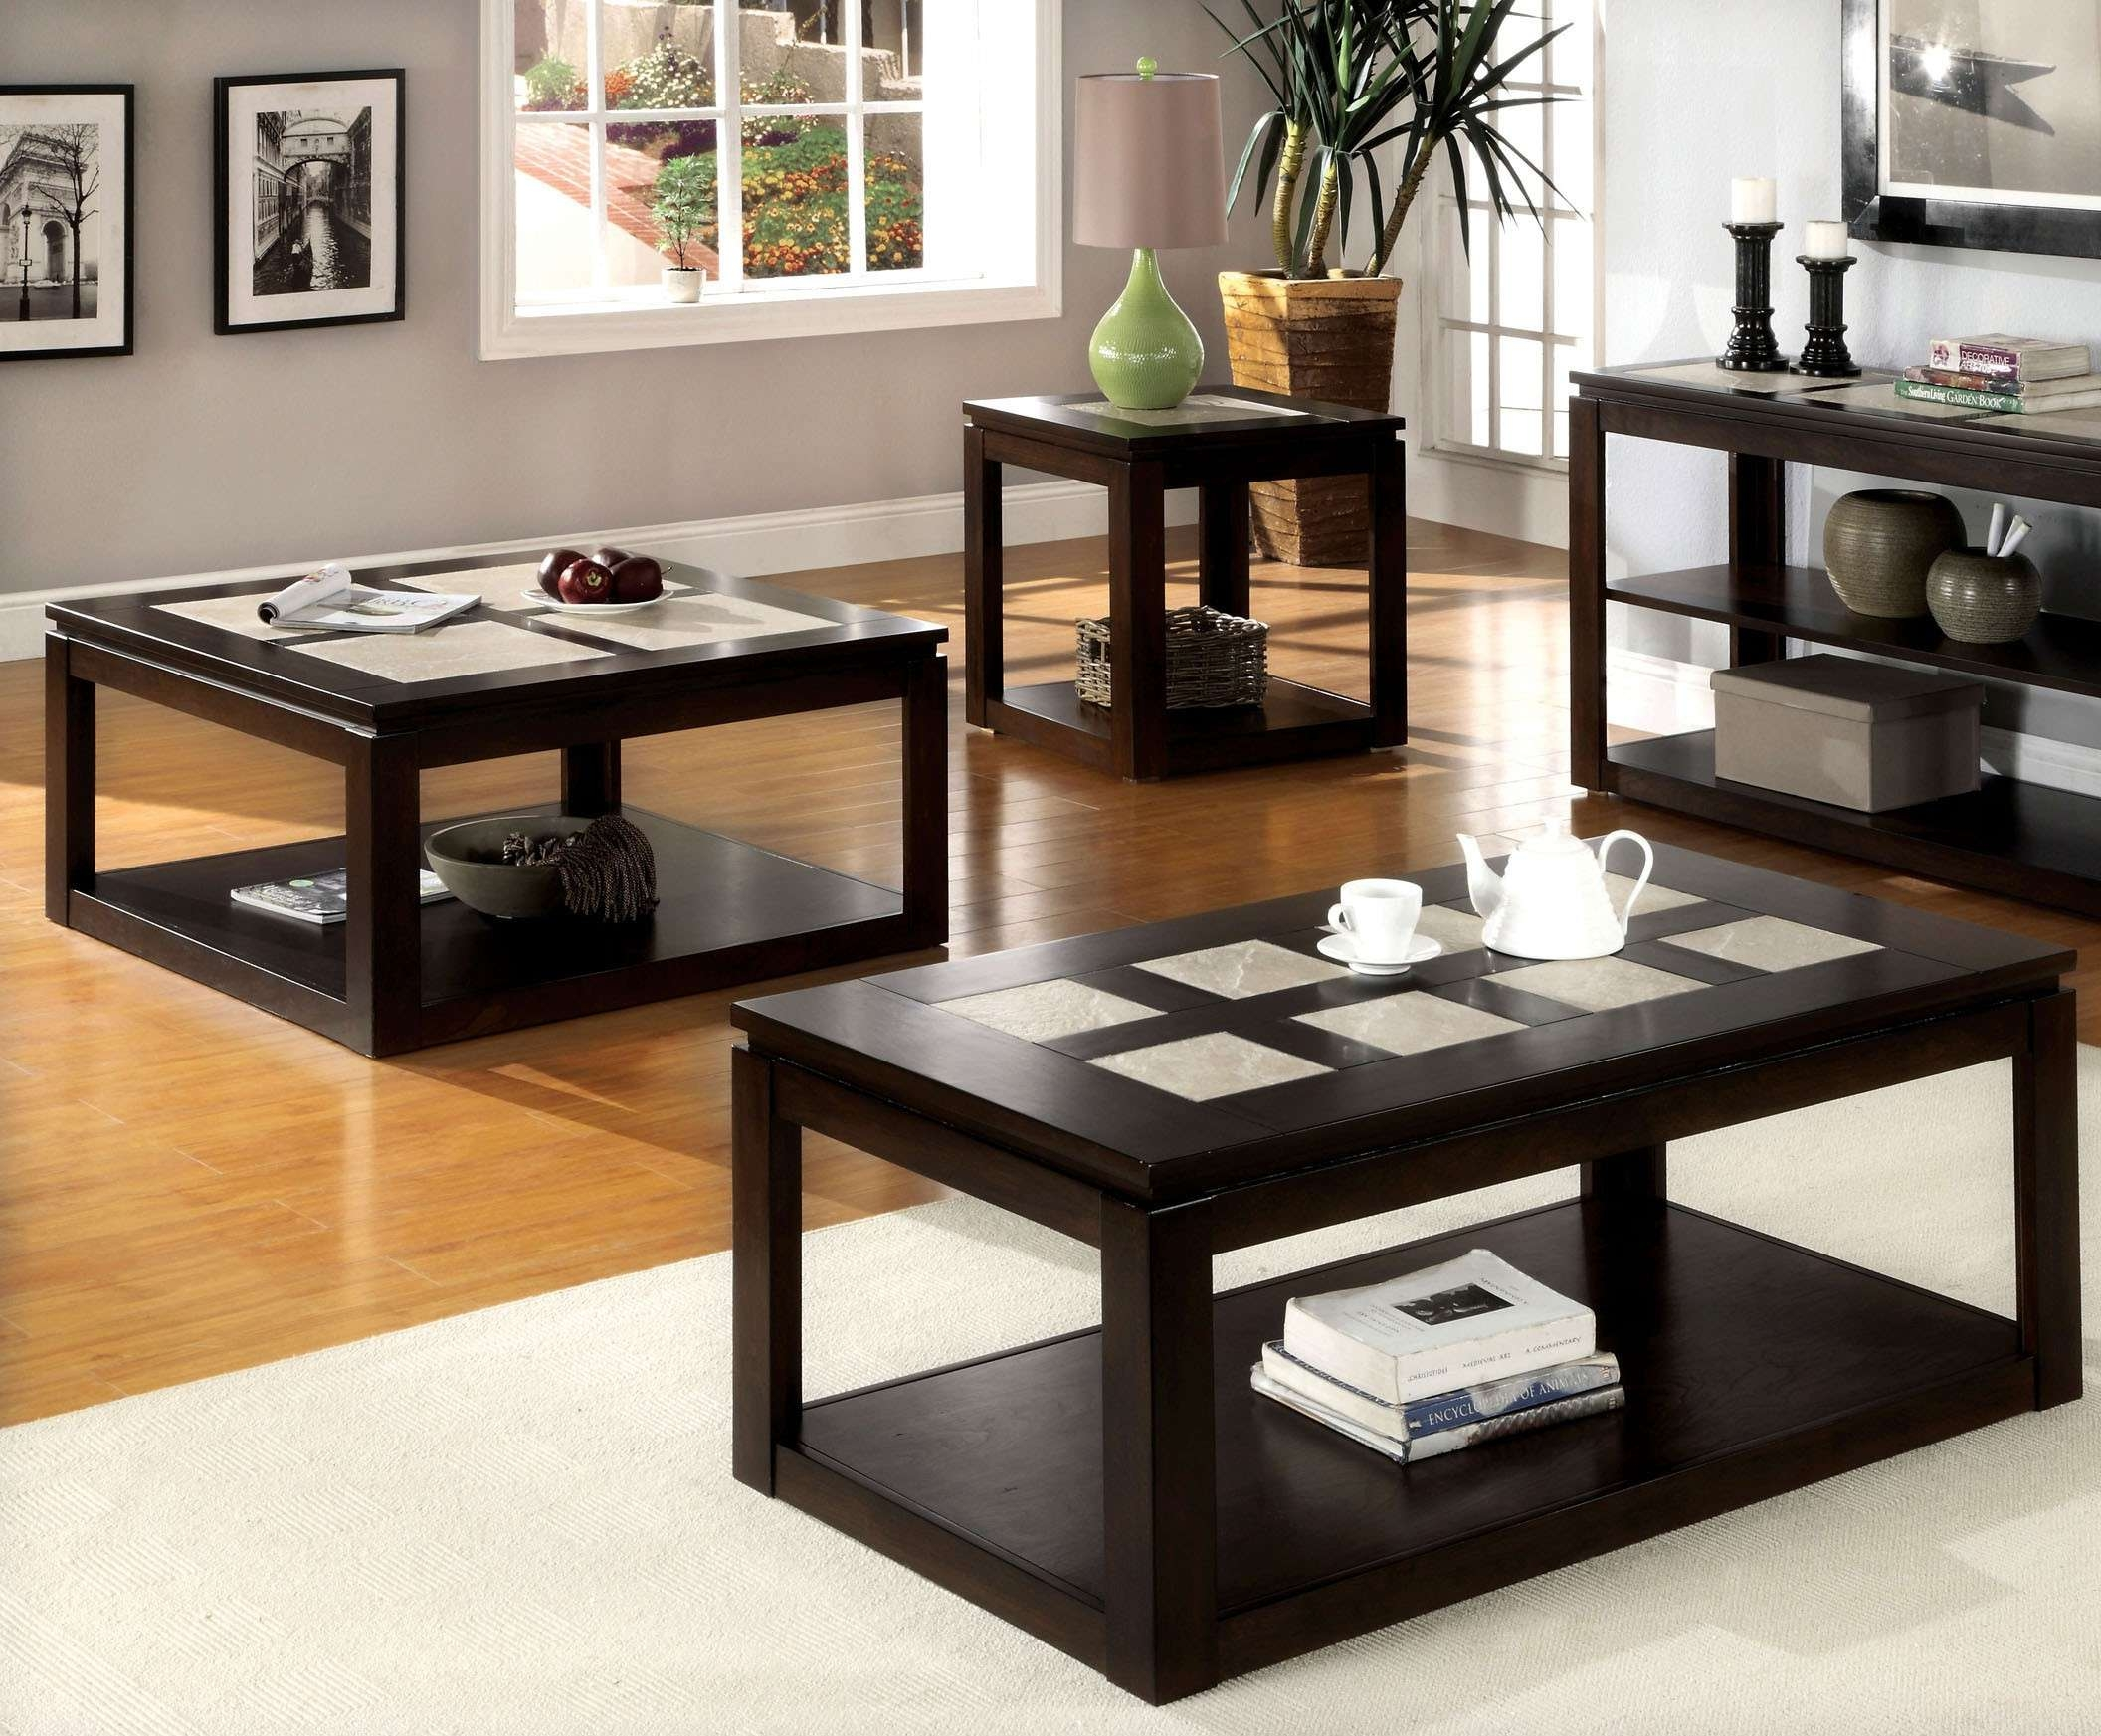 Newest Espresso Coffee Tables Intended For Coffee Table: Terrific Espresso  Coffee Table Set Oval Espresso